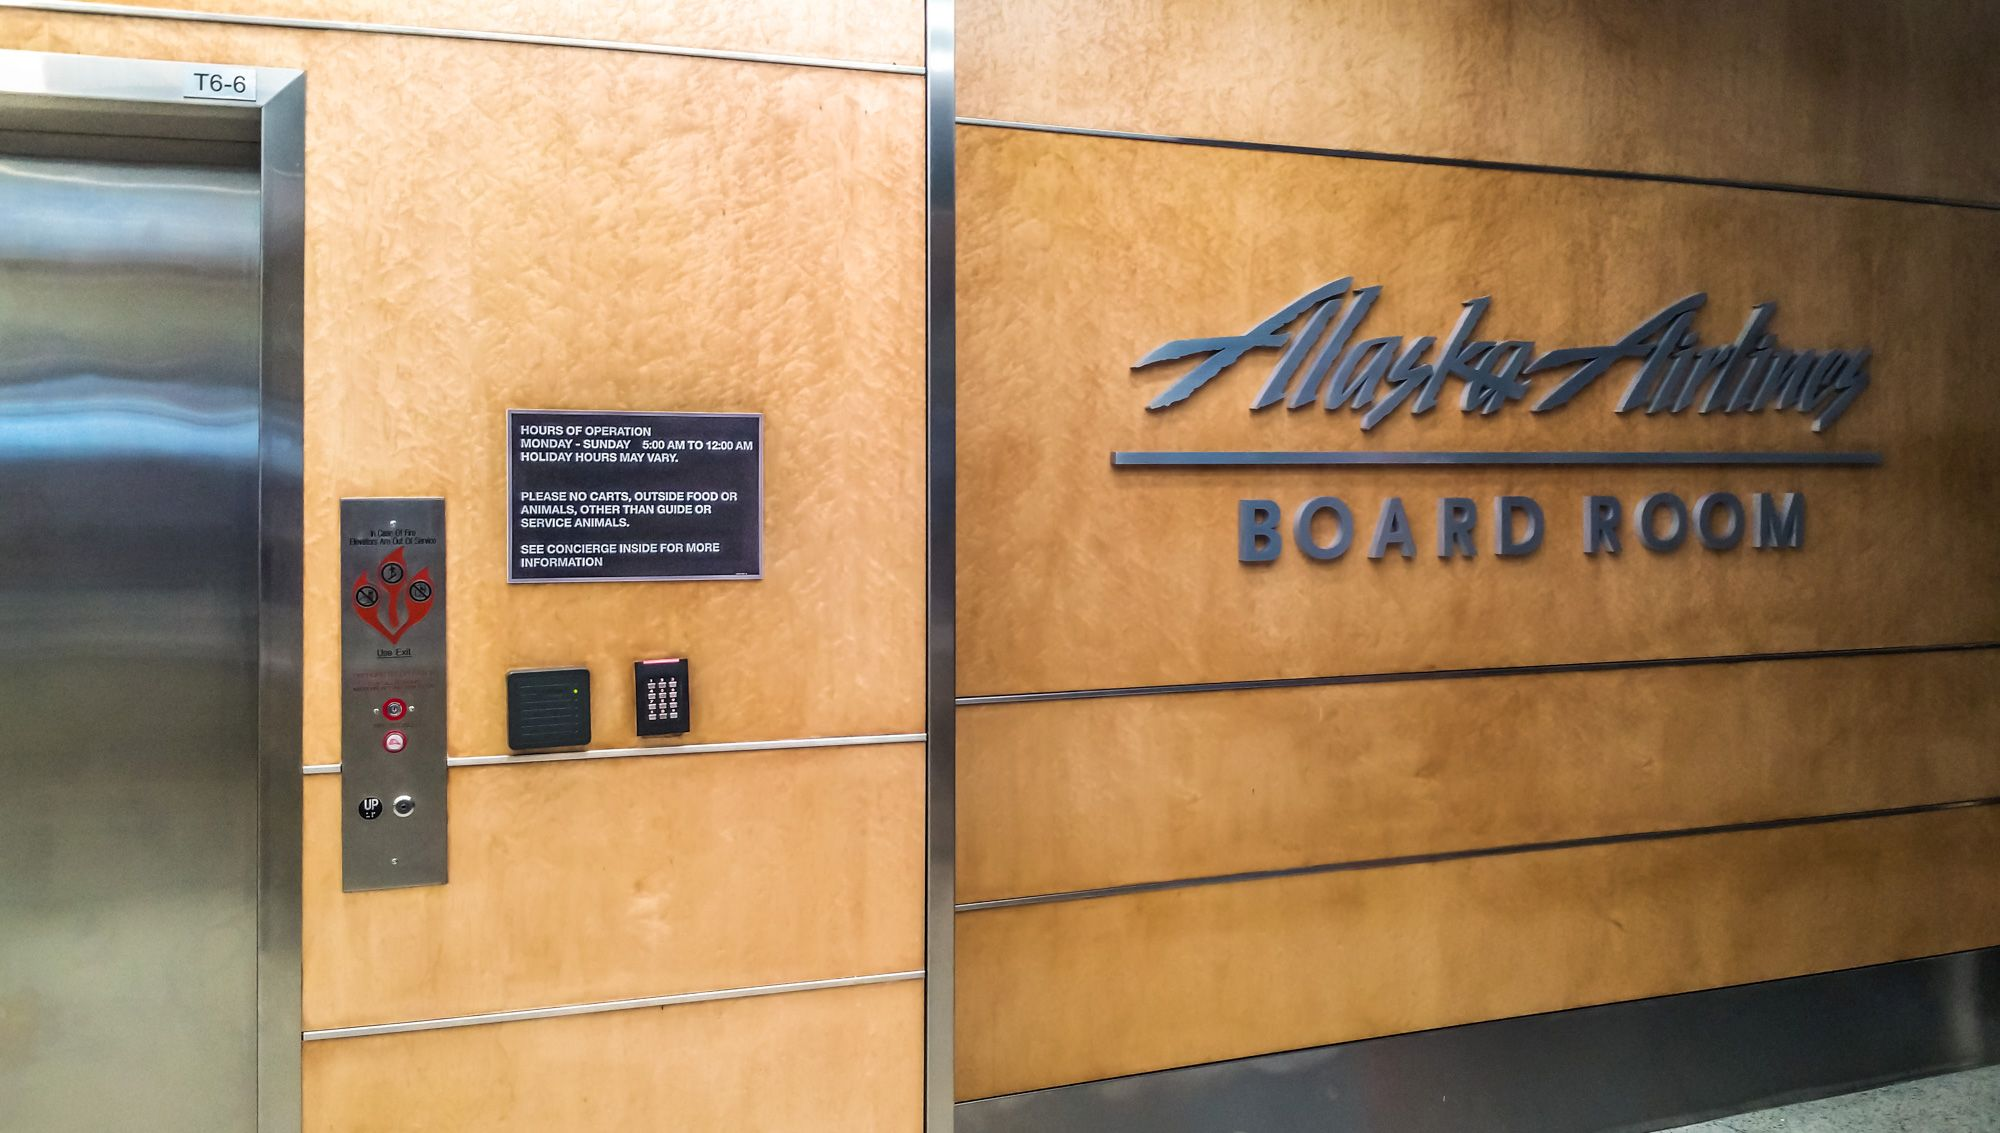 Travel Tip of the Week: The Hidden Ticket to Access AlaskaAir Board Rooms for Free